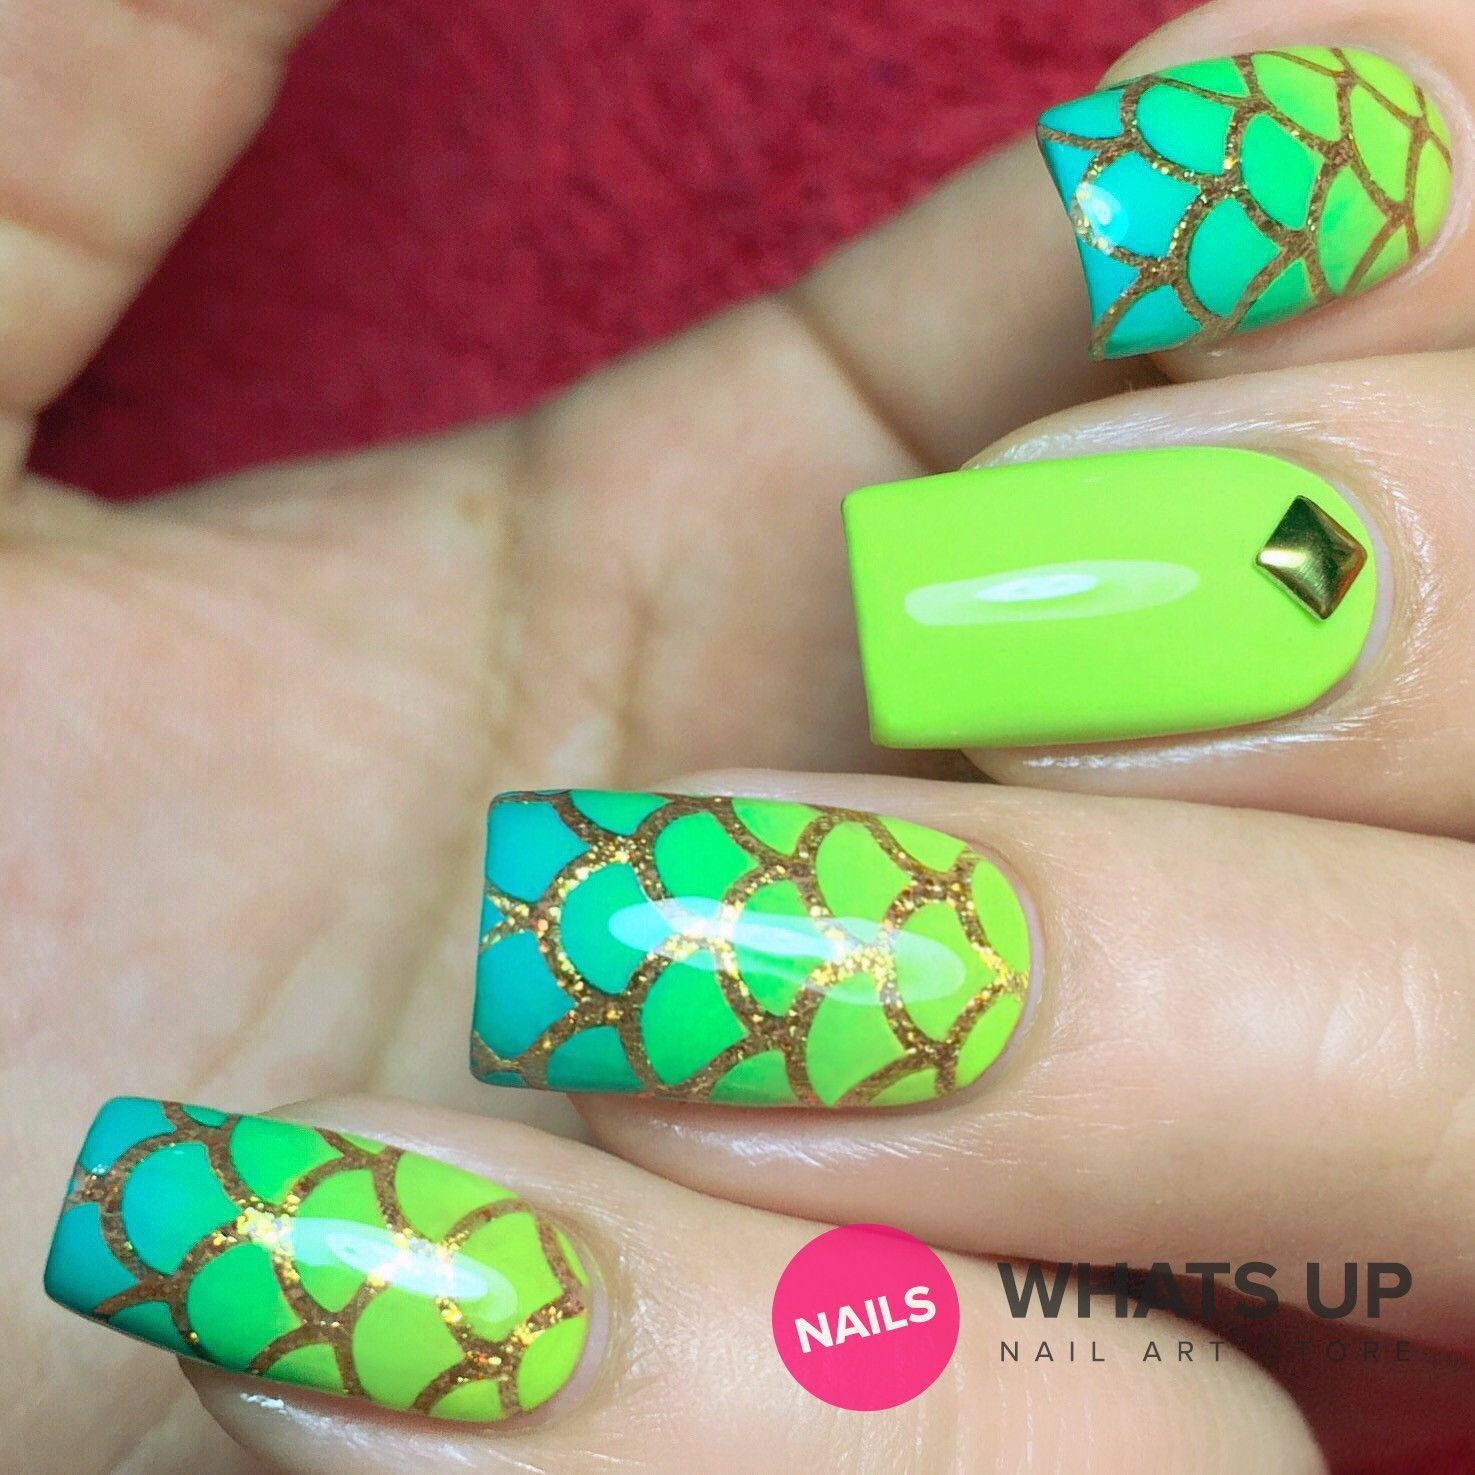 Daily Charme Nail Art Supply Nail Vinyls Sticker Stencil Whats Up ...